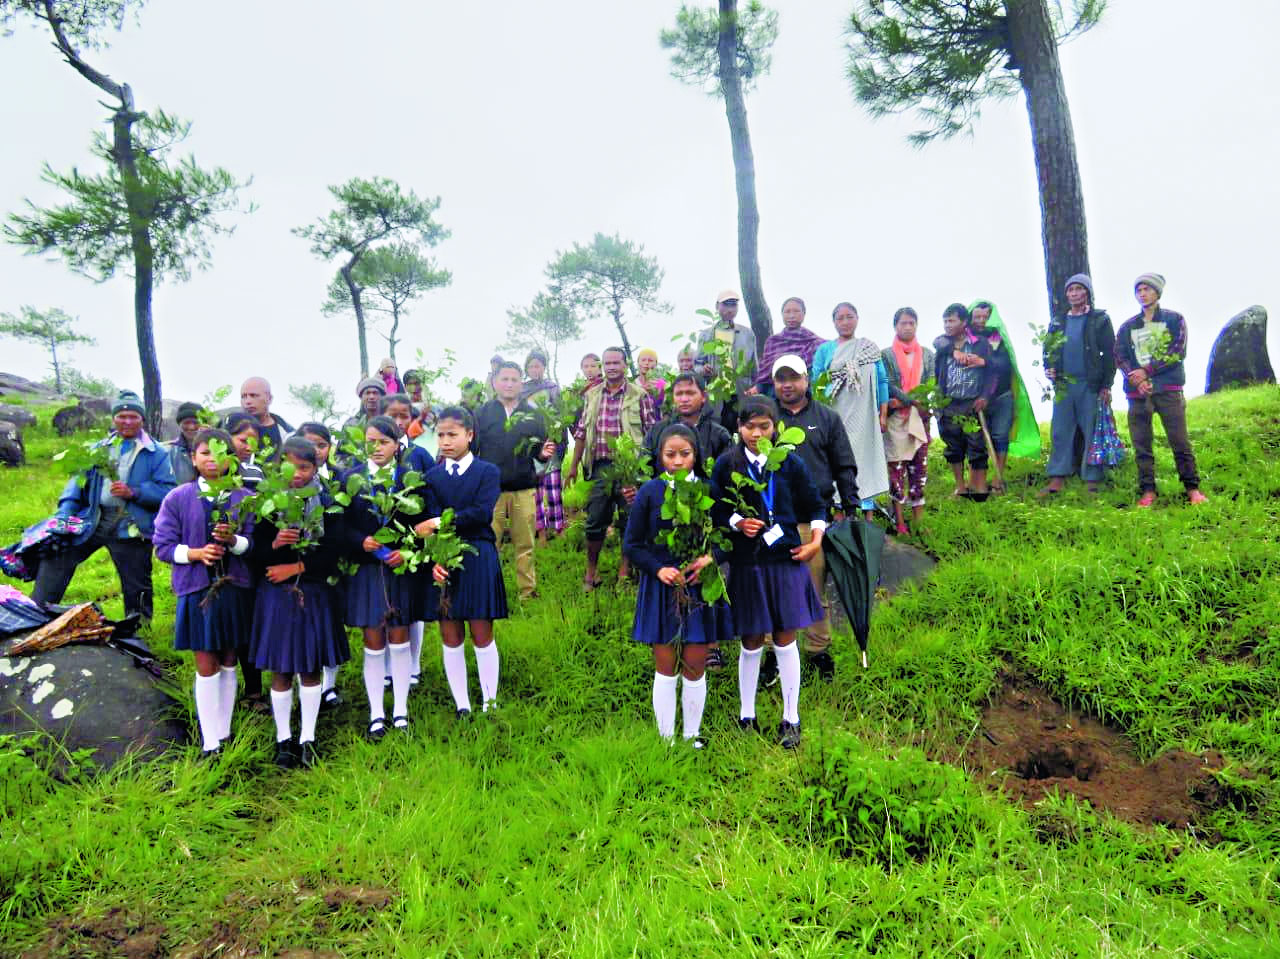 Students take part in a green drive in Meghalaya's South West Khasi Hills on June 5, 2019. Meghalaya has planted 1.5 million saplings on a single day.